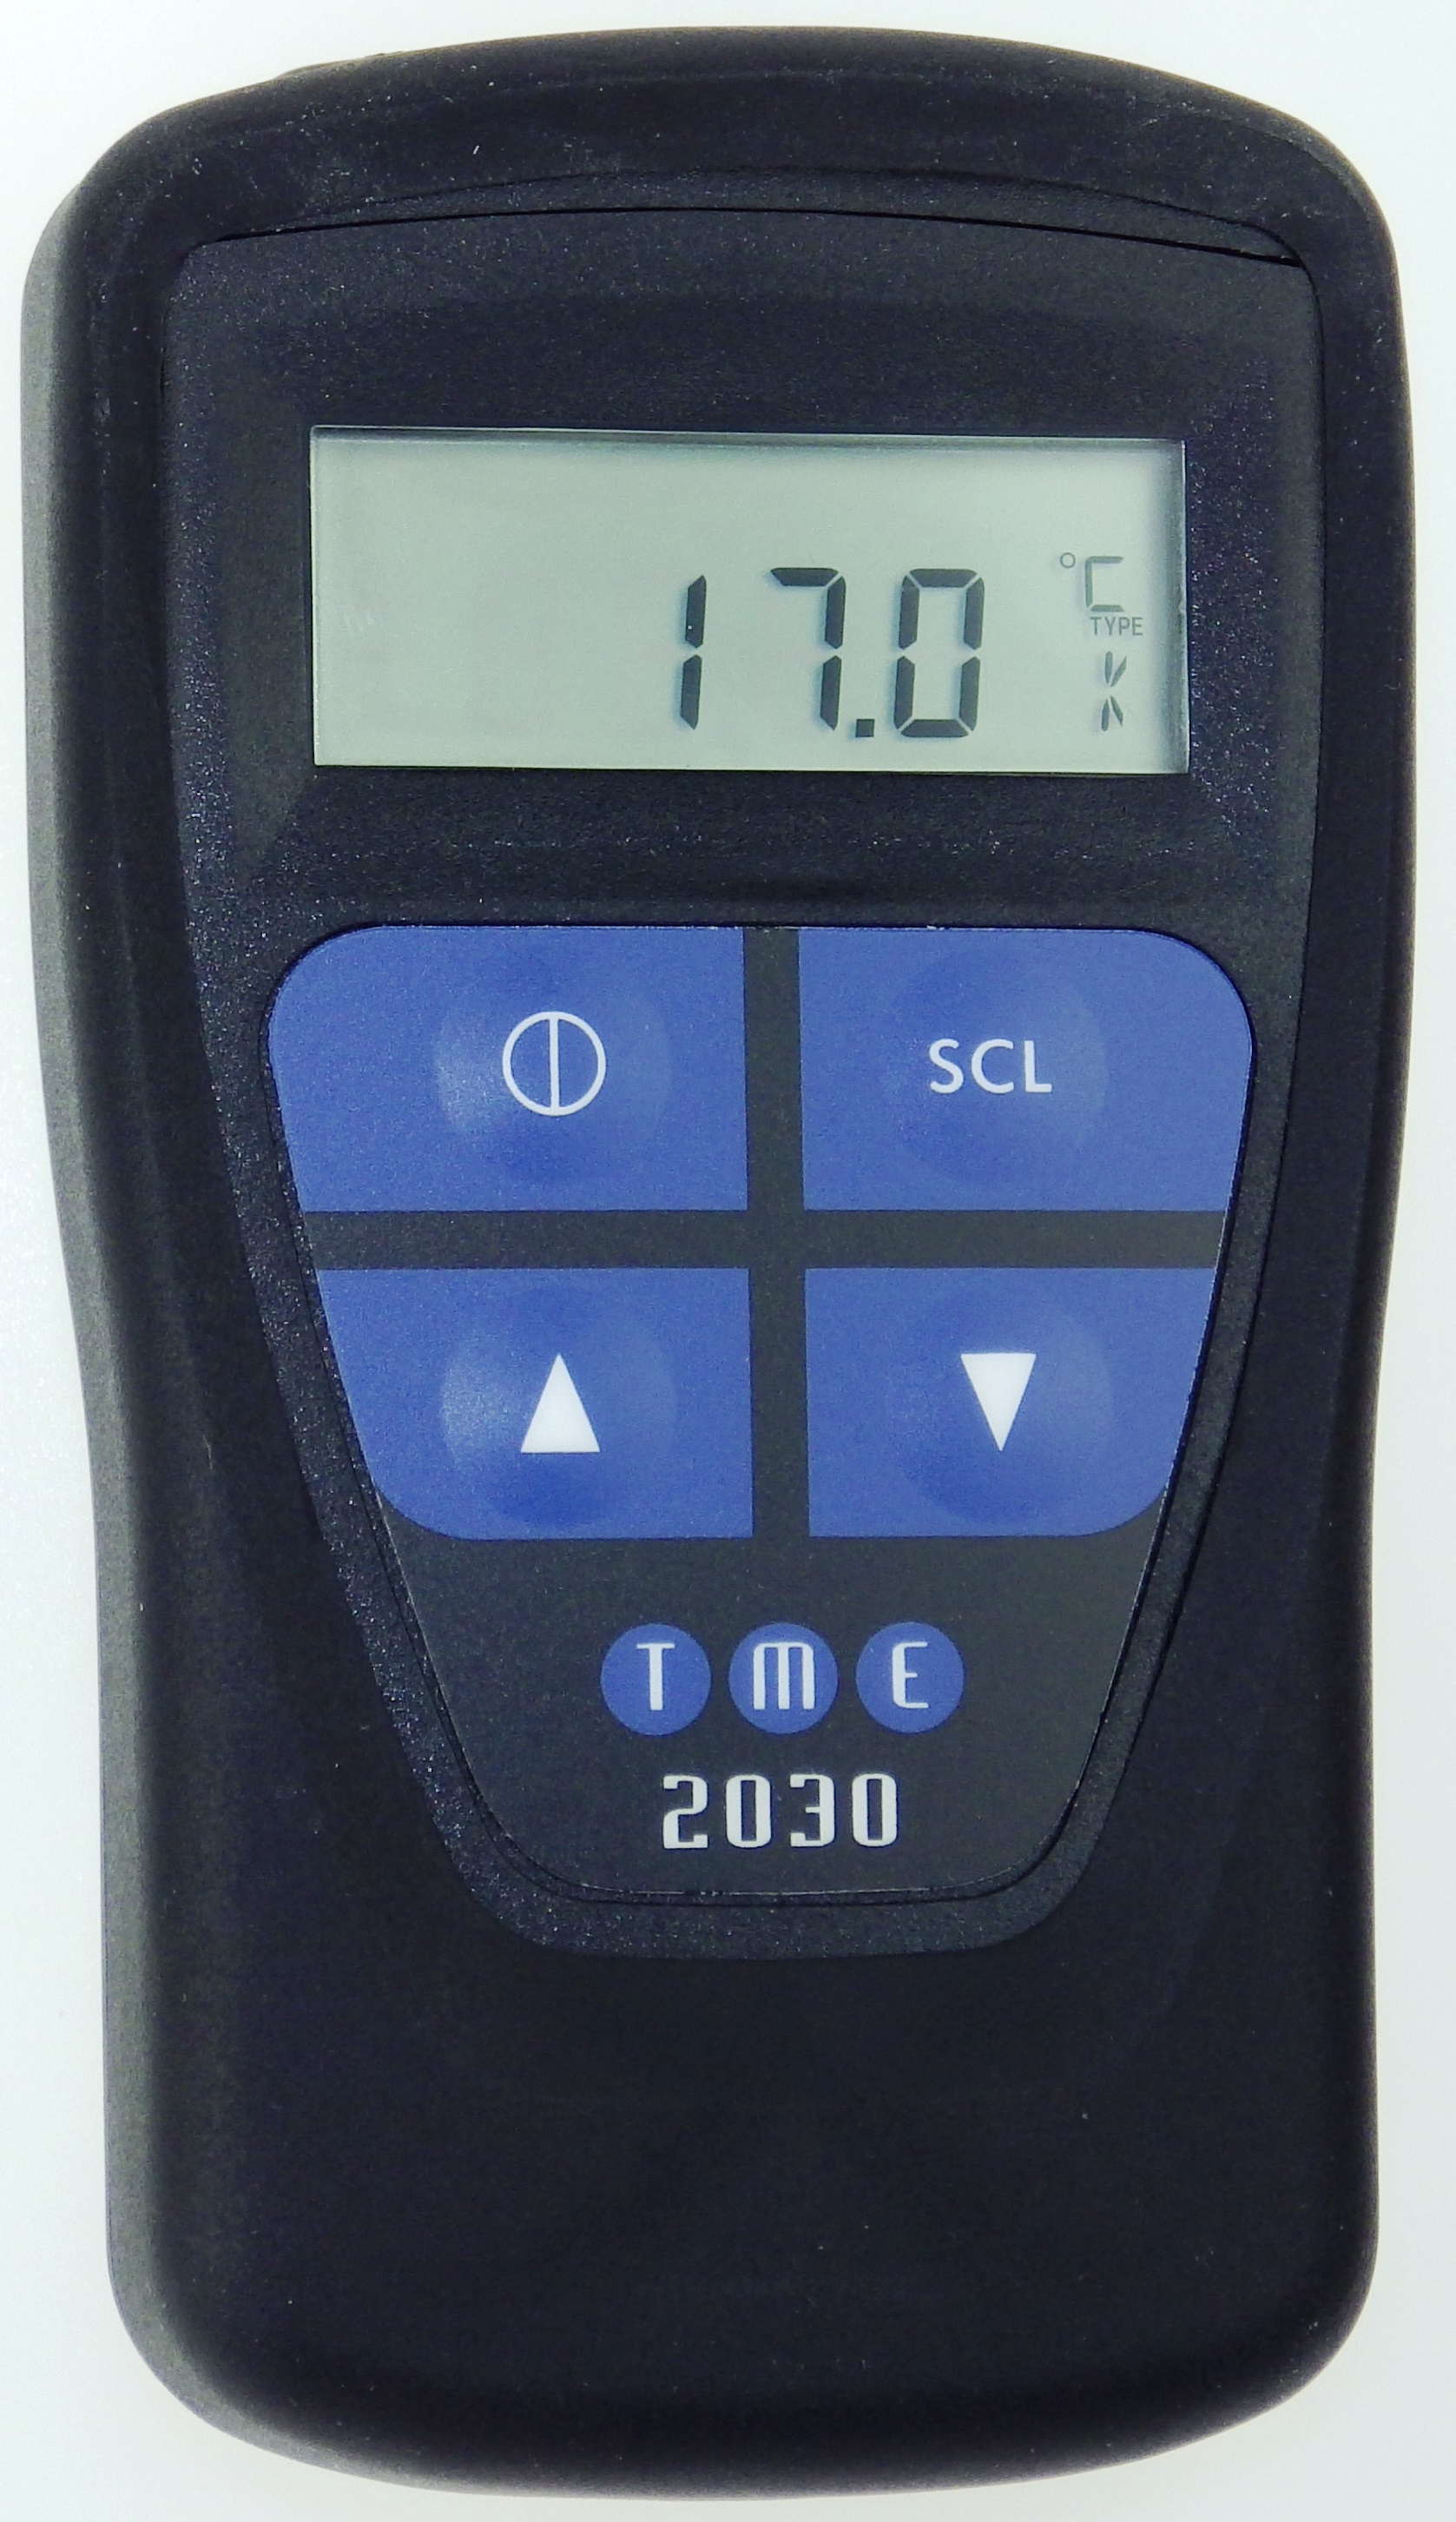 This Waterproof, Self-Calibrating Thermometer/Simulator can simulate the thermocouple output, and has a Milli-Volt measu